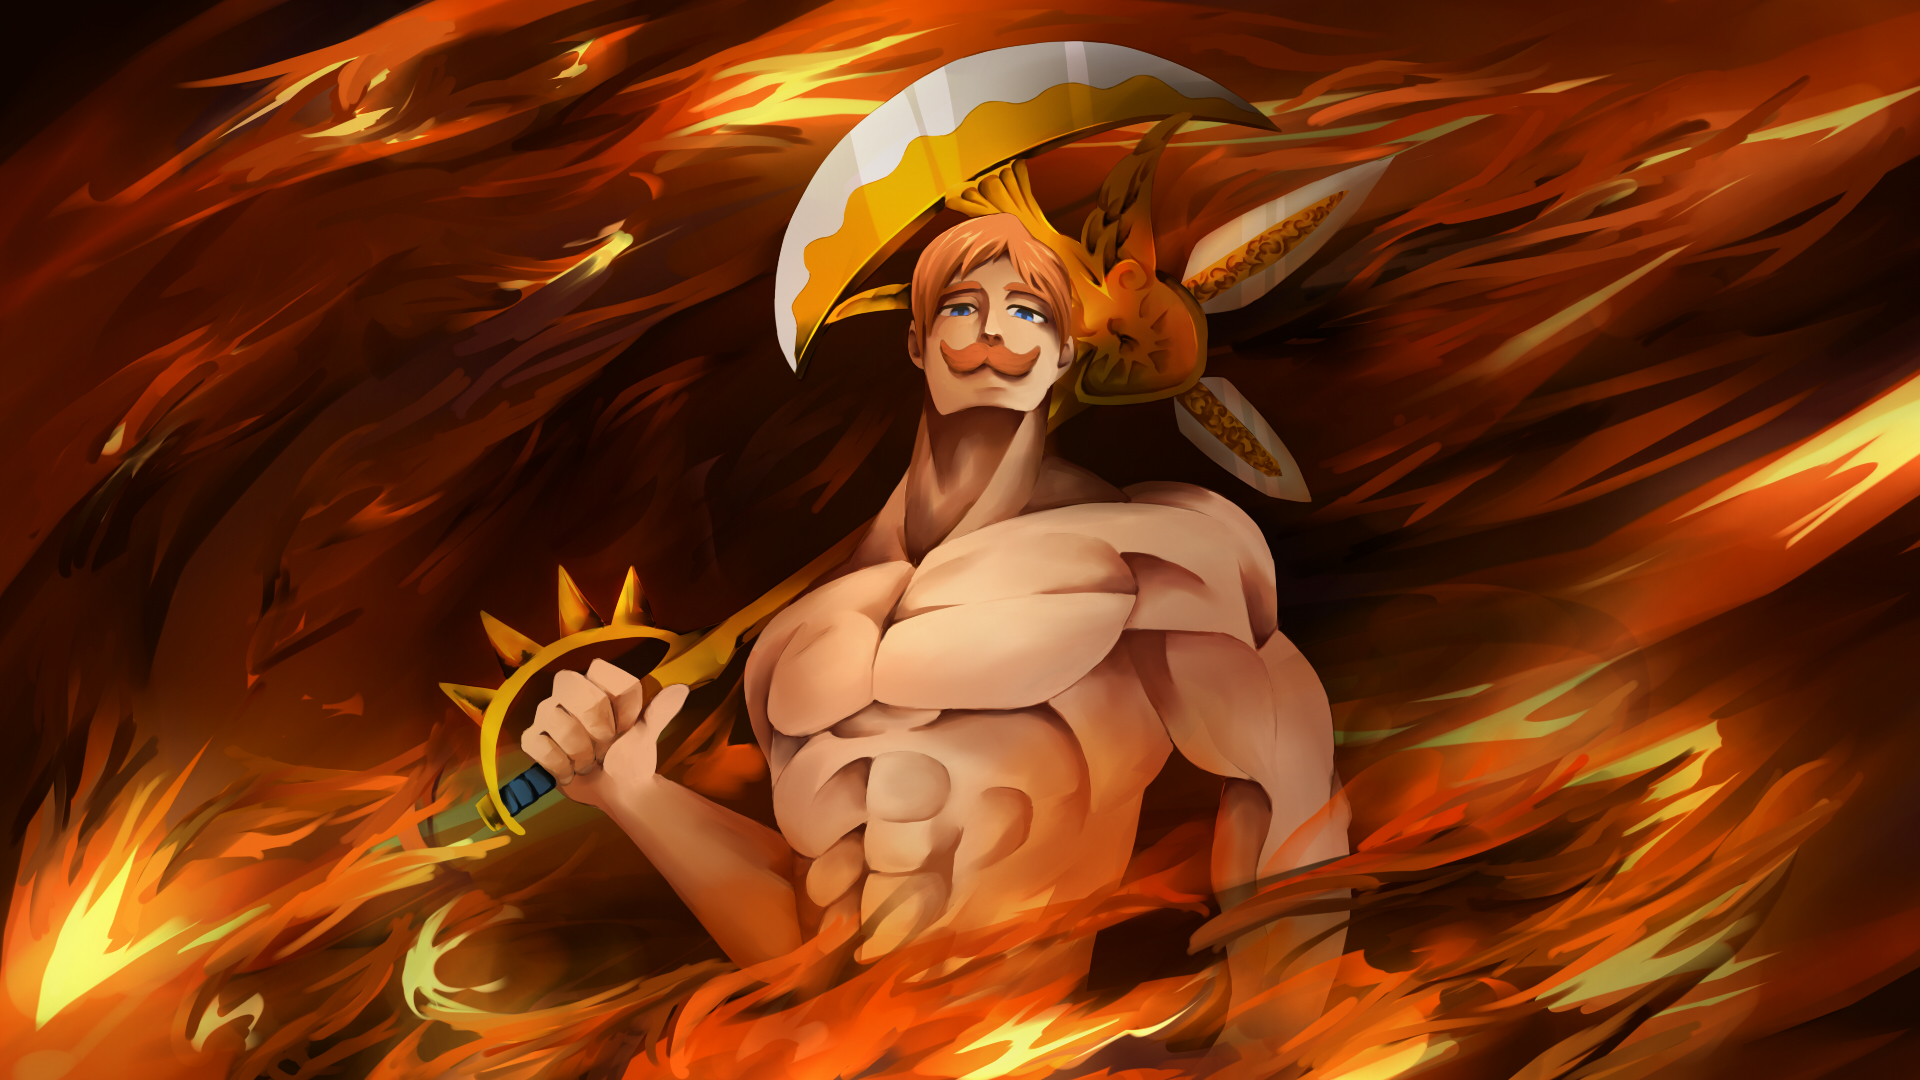 Wallpaper Of Escanor The Seven Deadly Sins Art Fire Background